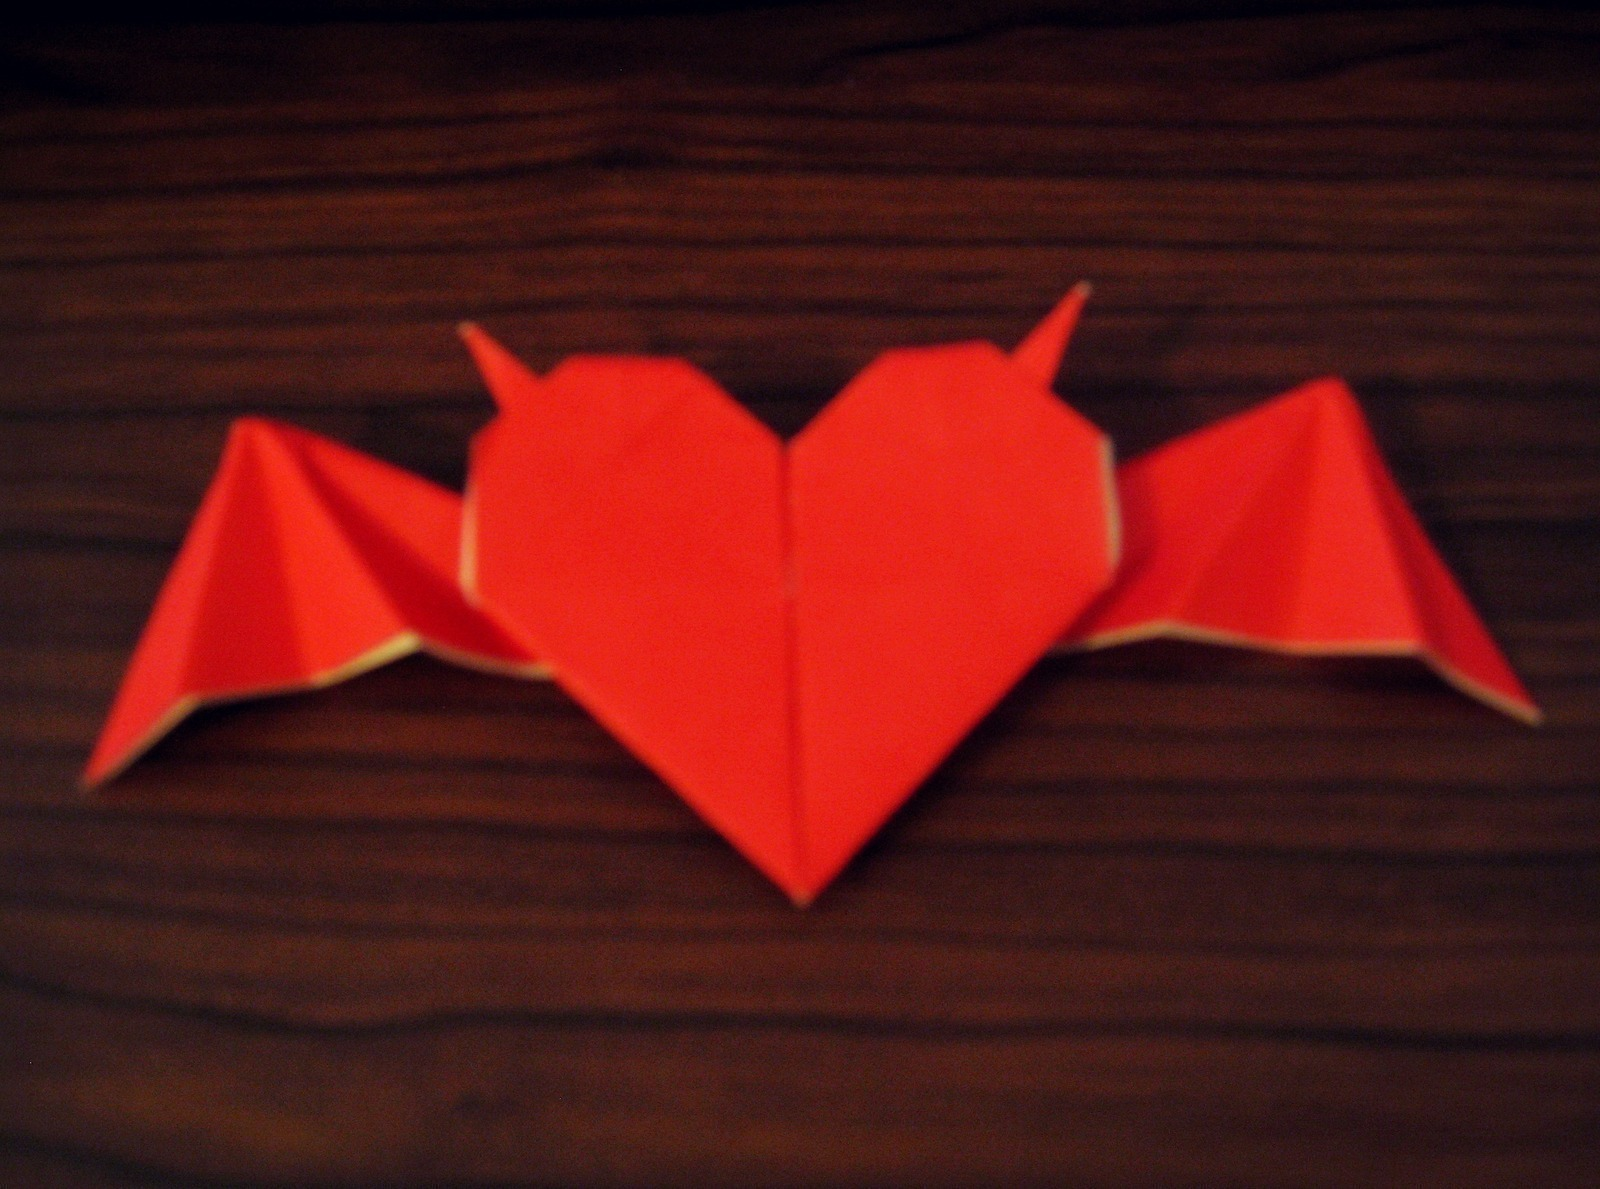 Origami Heart With Horns And Bat Wings · How To Fold An ... - photo#45